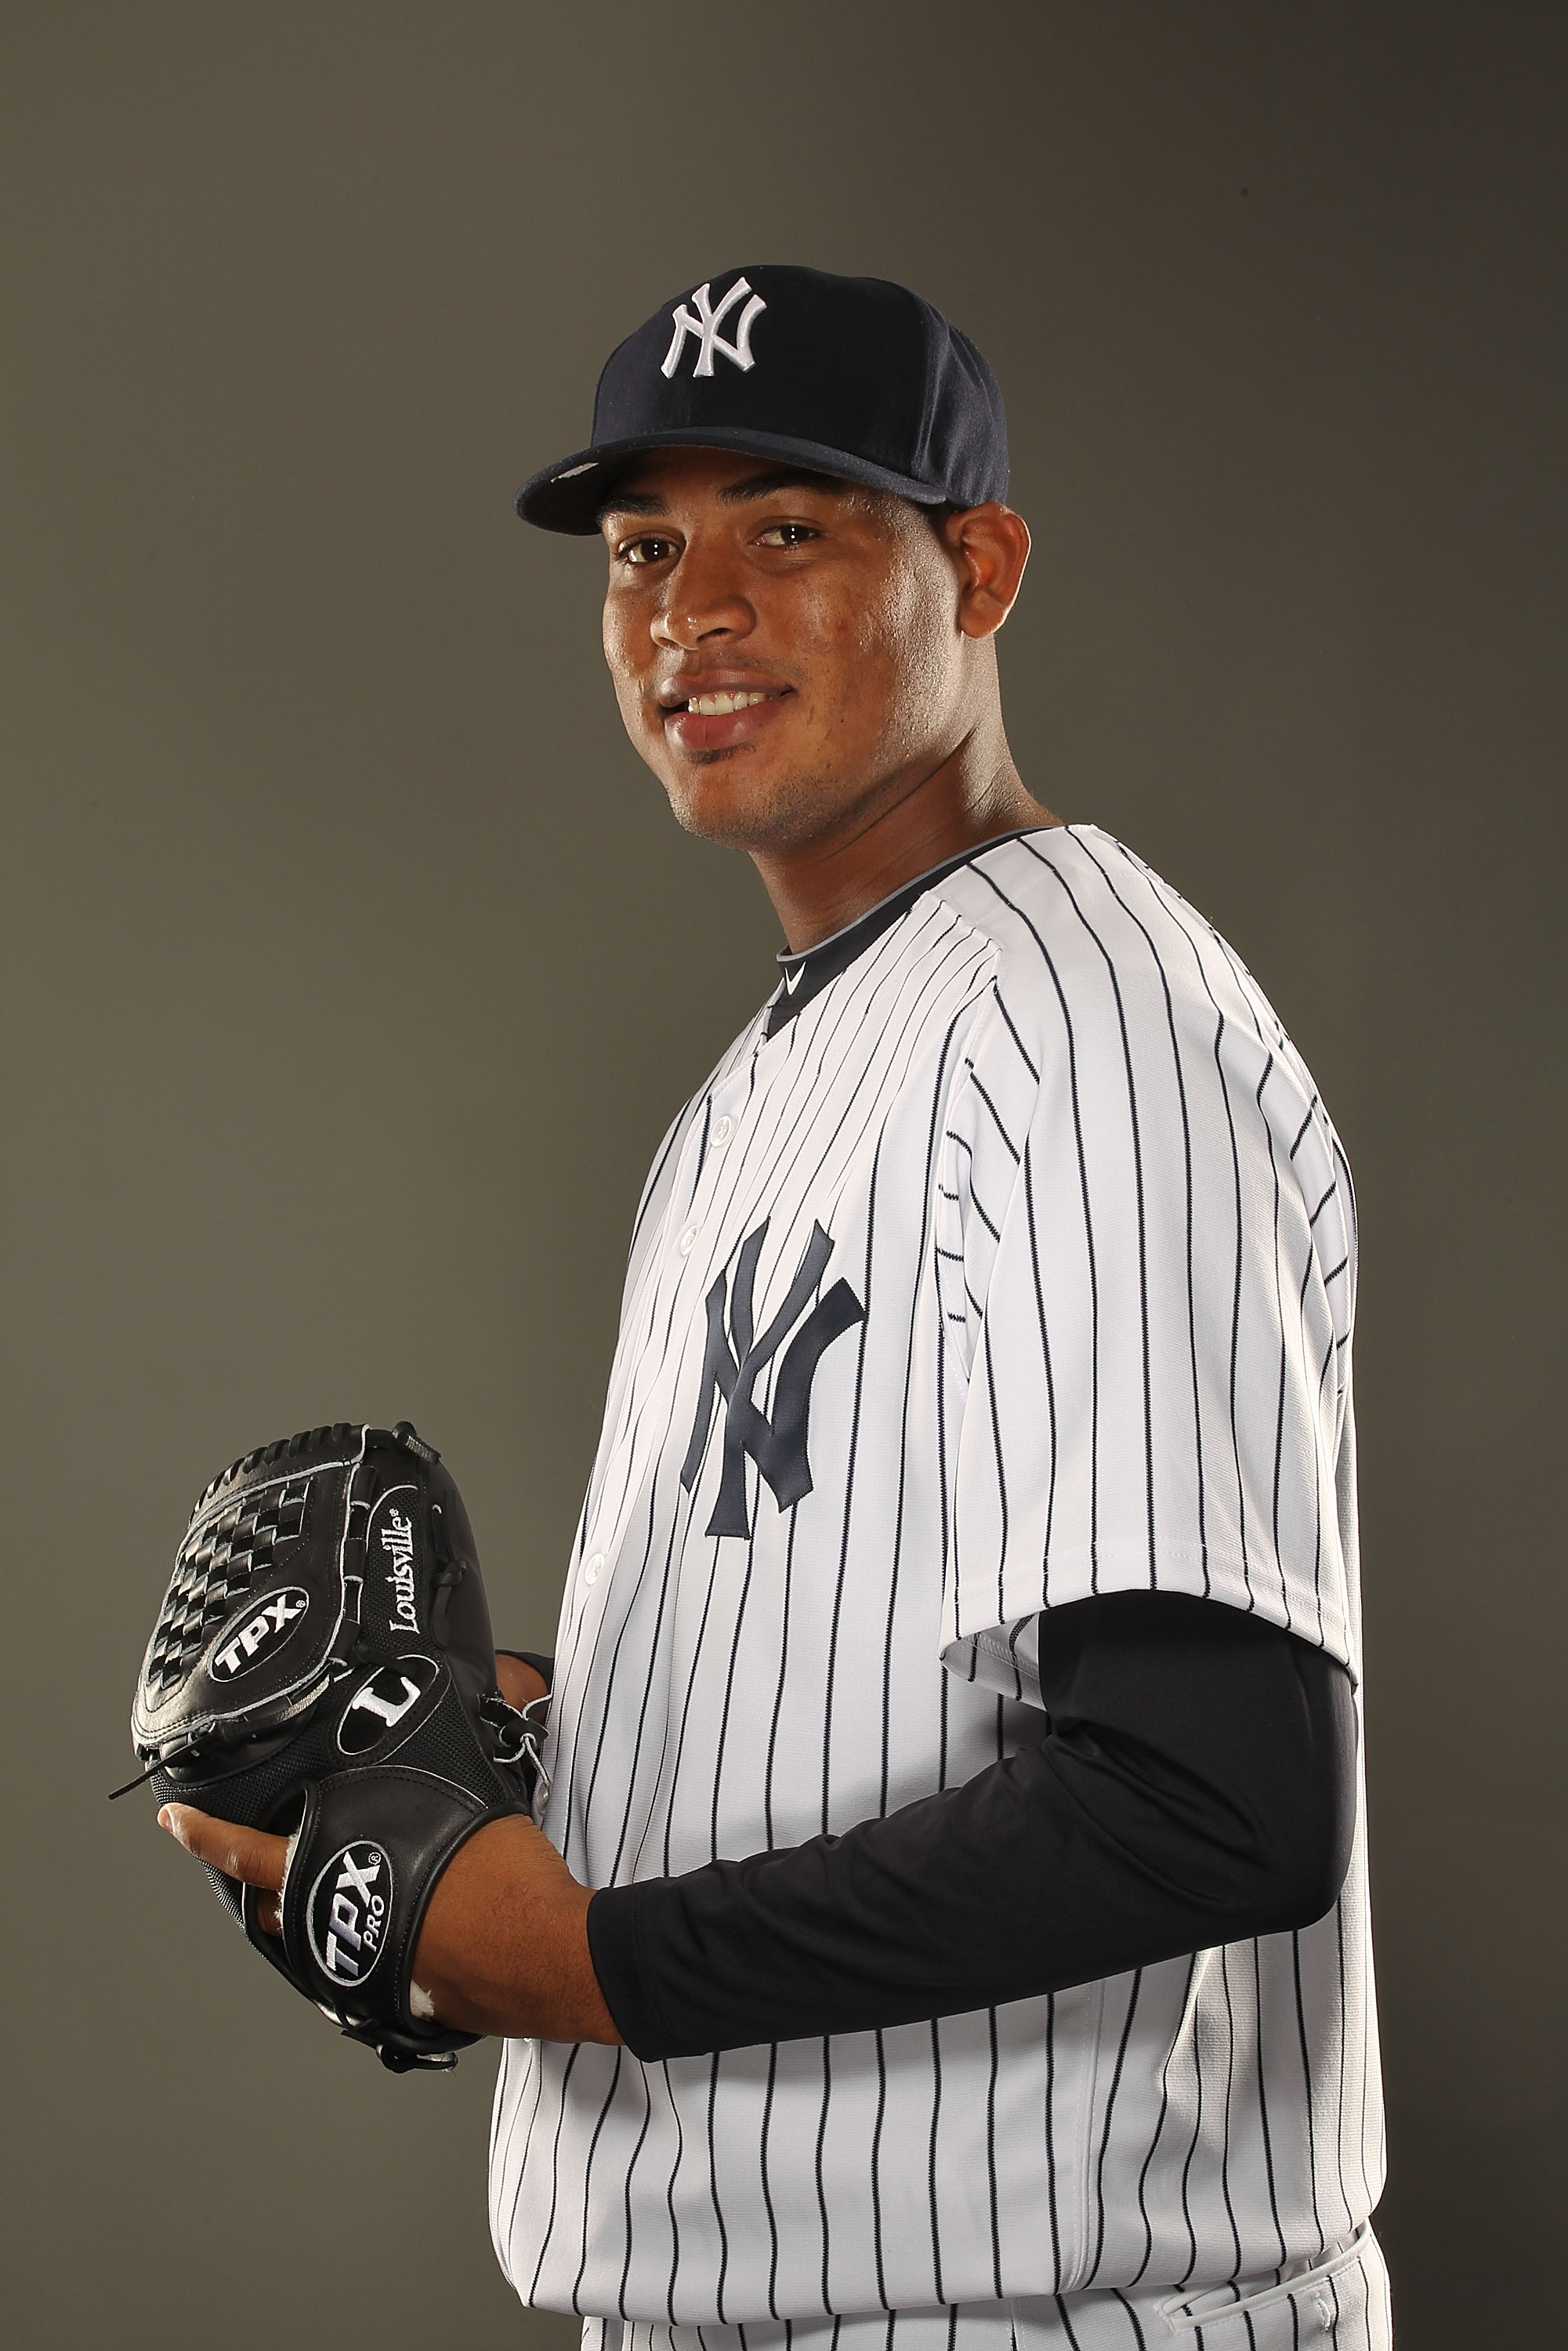 TAMPA, FL - FEBRUARY 23:  Ivan Nova #47 of the New York Yankees poses for a portrait on Photo Day at George M. Steinbrenner Field on February 23, 2011 in Tampa, Florida.  (Photo by Al Bello/Getty Images)